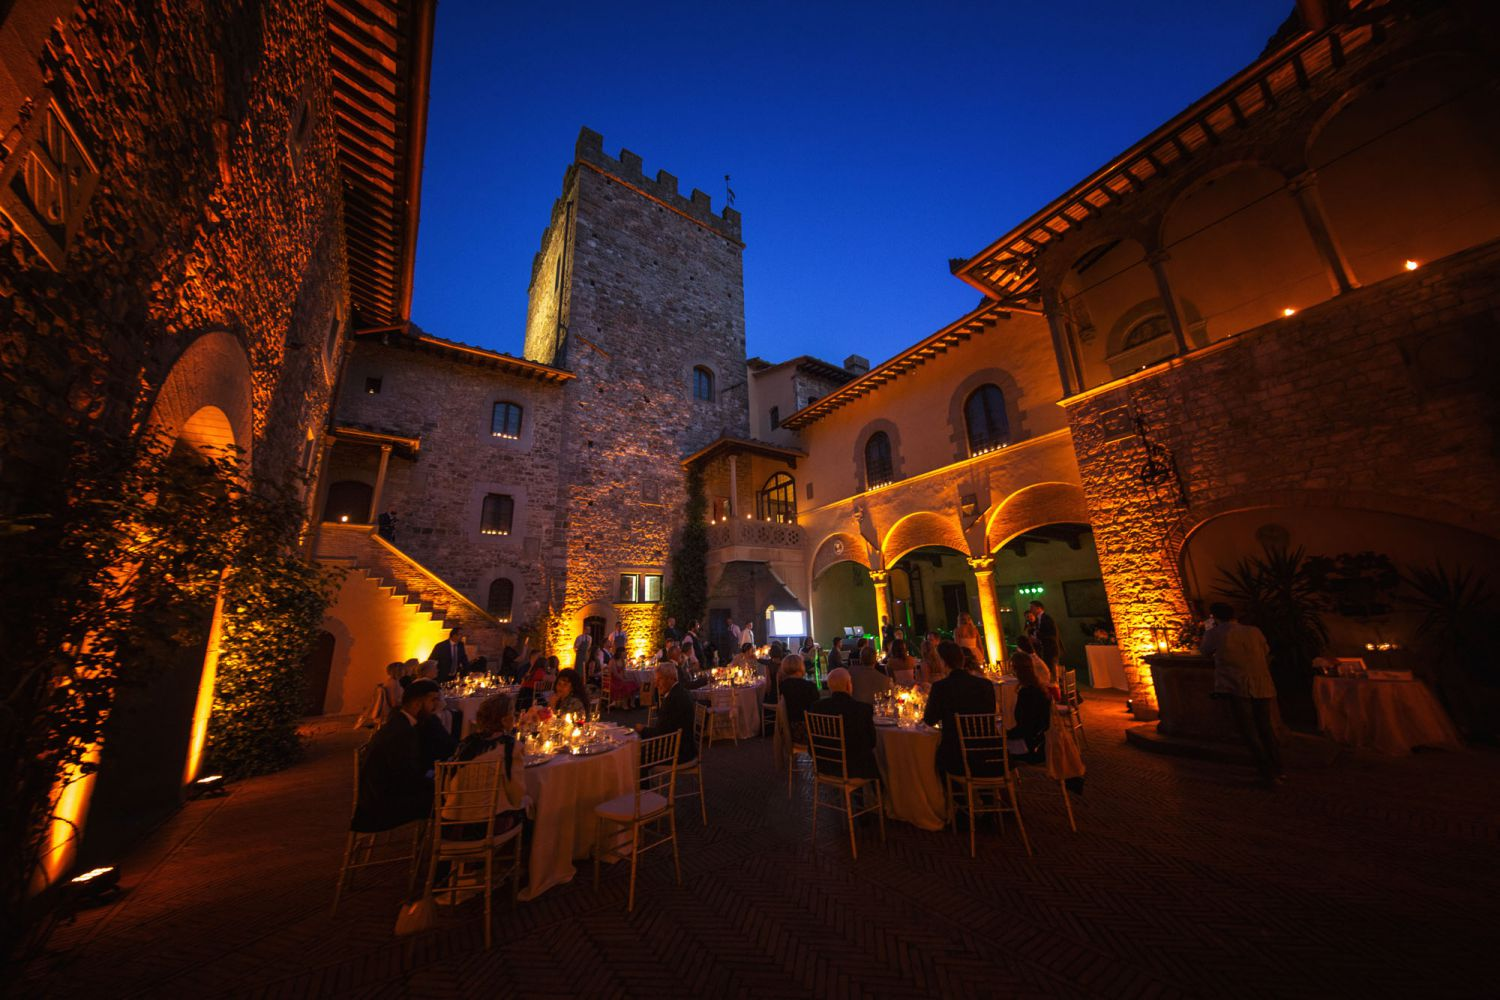 Weddings, Civil and Symbolic Ceremonies, Events at <br>Castello Il Palagio</p><p><a class='btn btn-default' href='events/'>Read more</a>